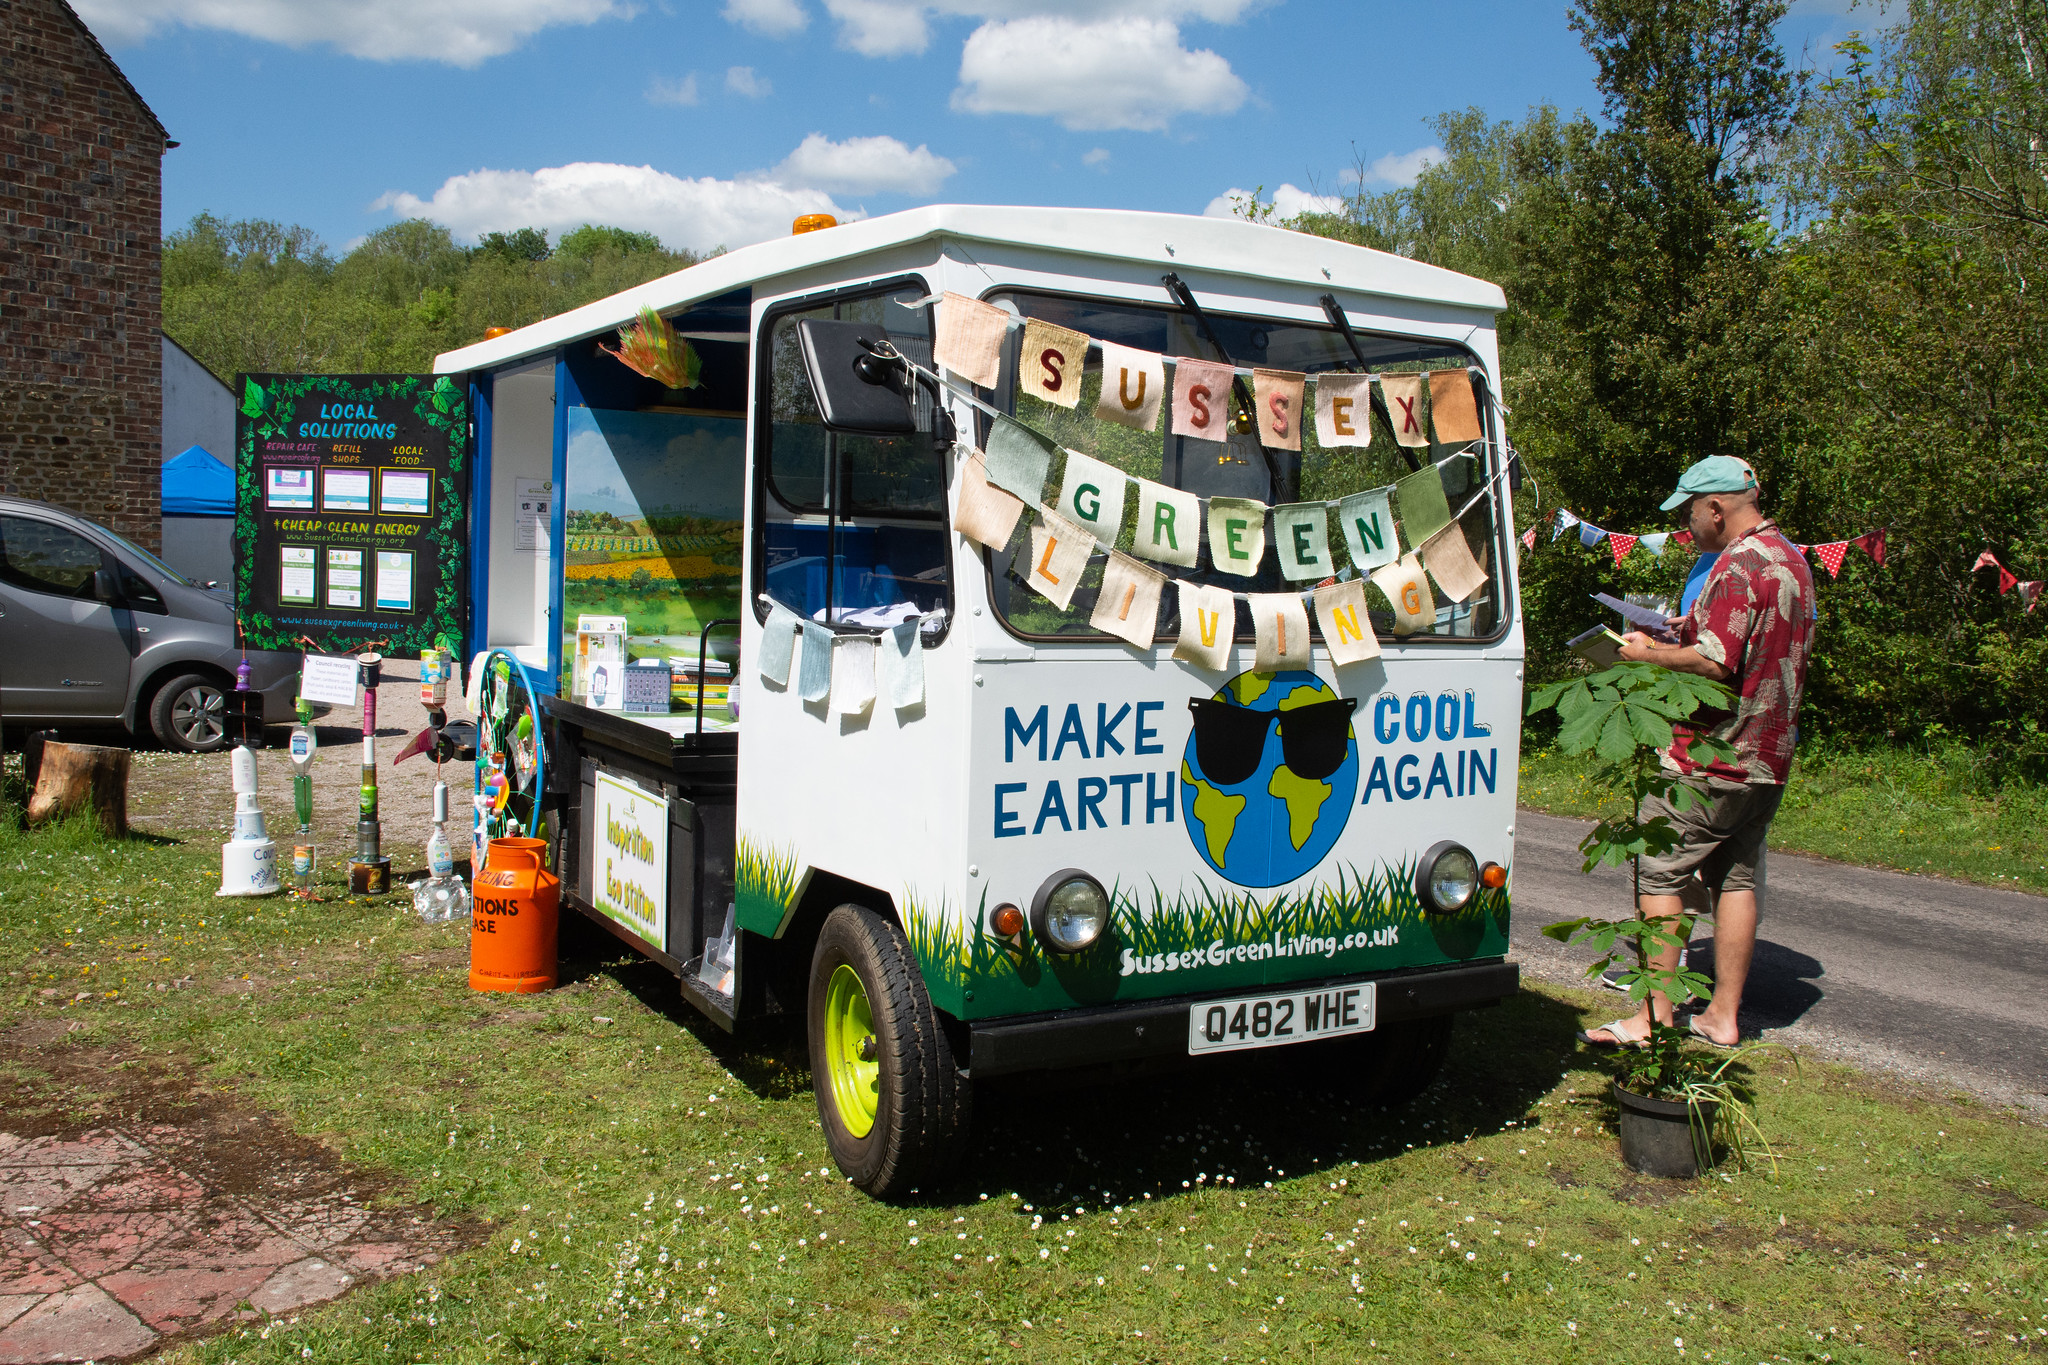 Environmental education charity, Sussex Green Living, engaged with visitors to Amberley Museum on World Environment Day